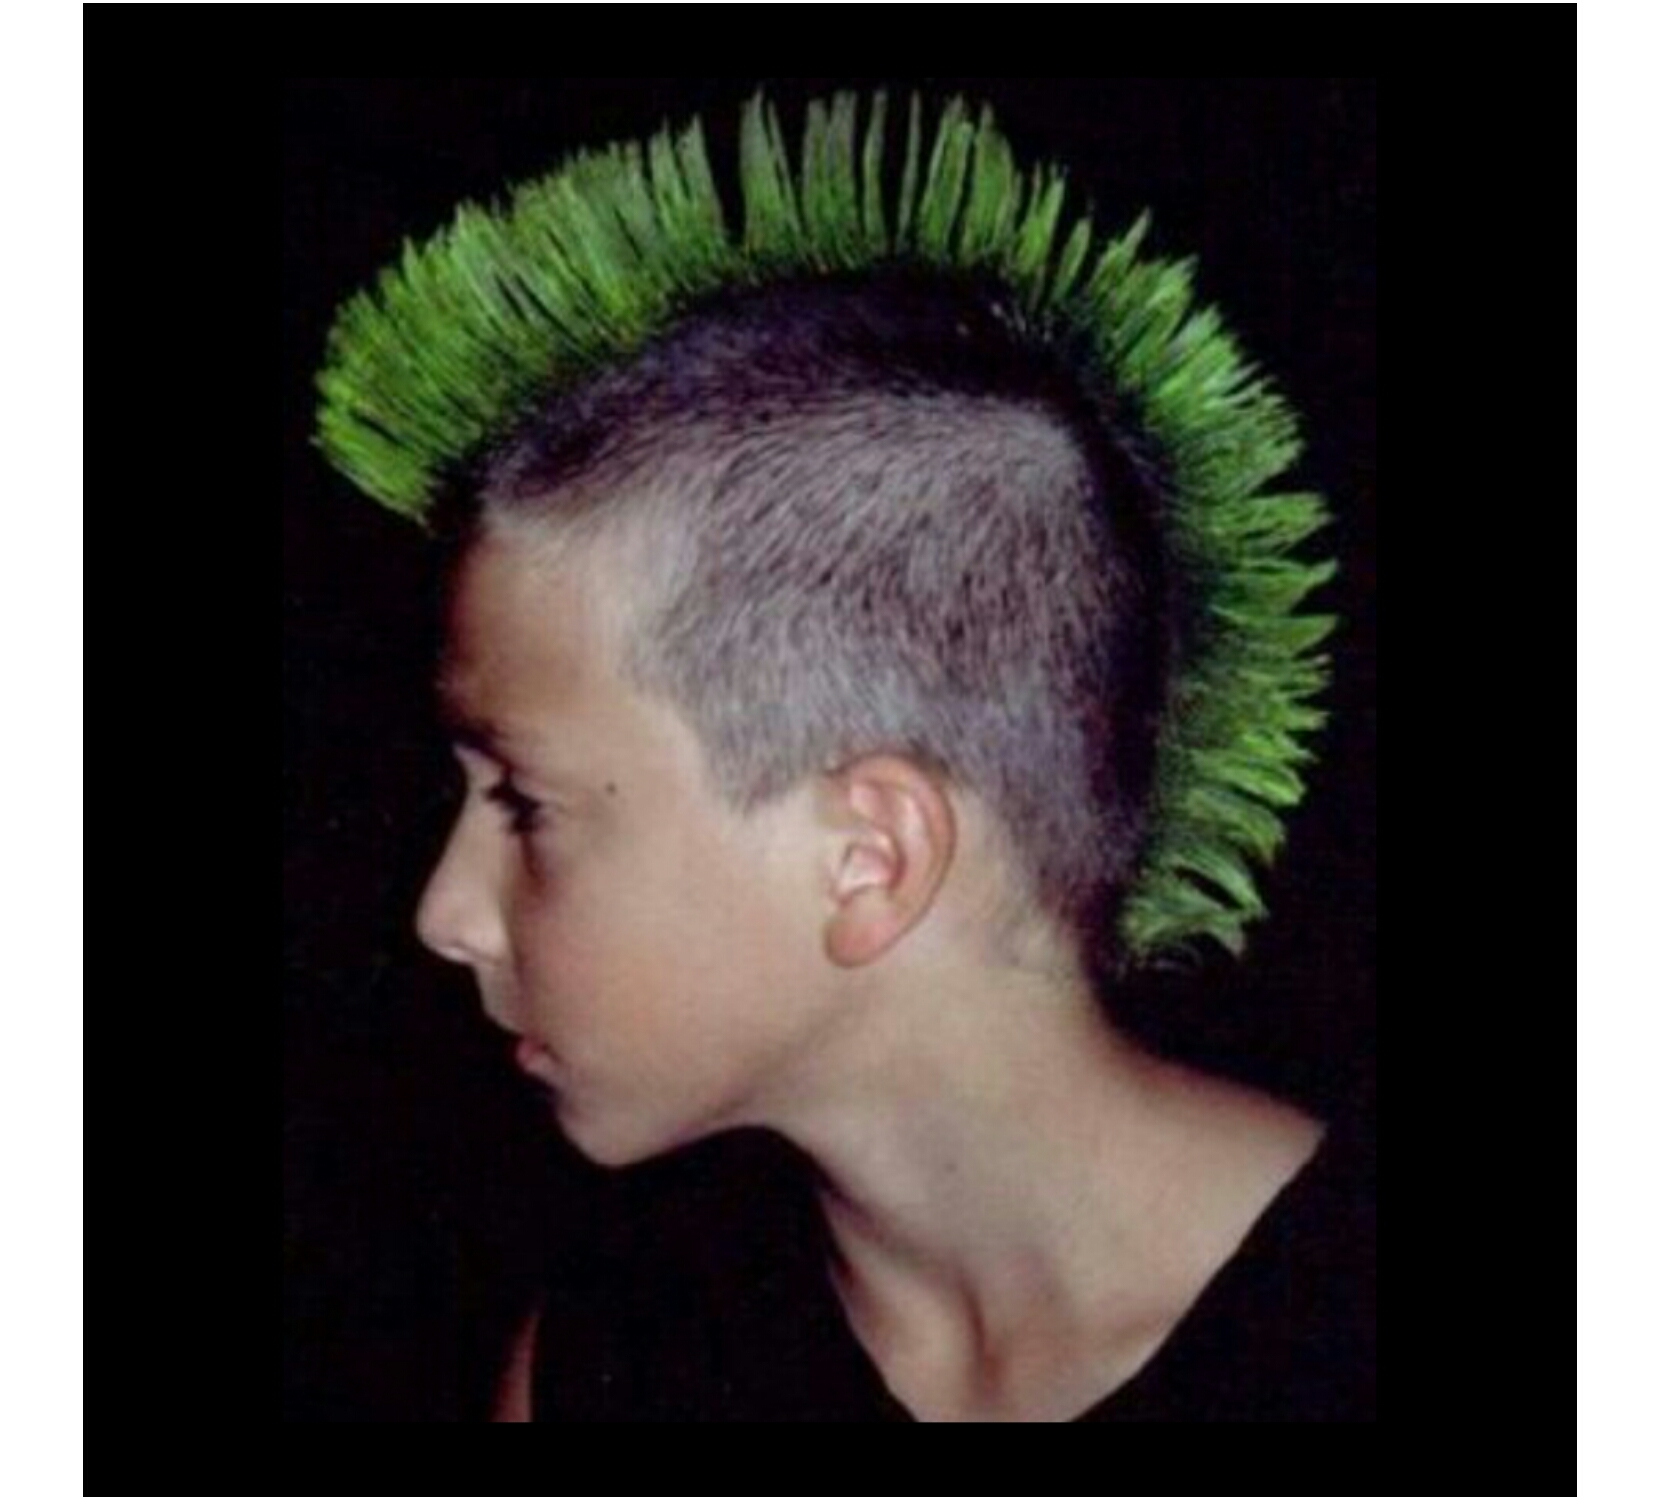 Mohawk Hairstyle And The Mordern Fashion The London Press